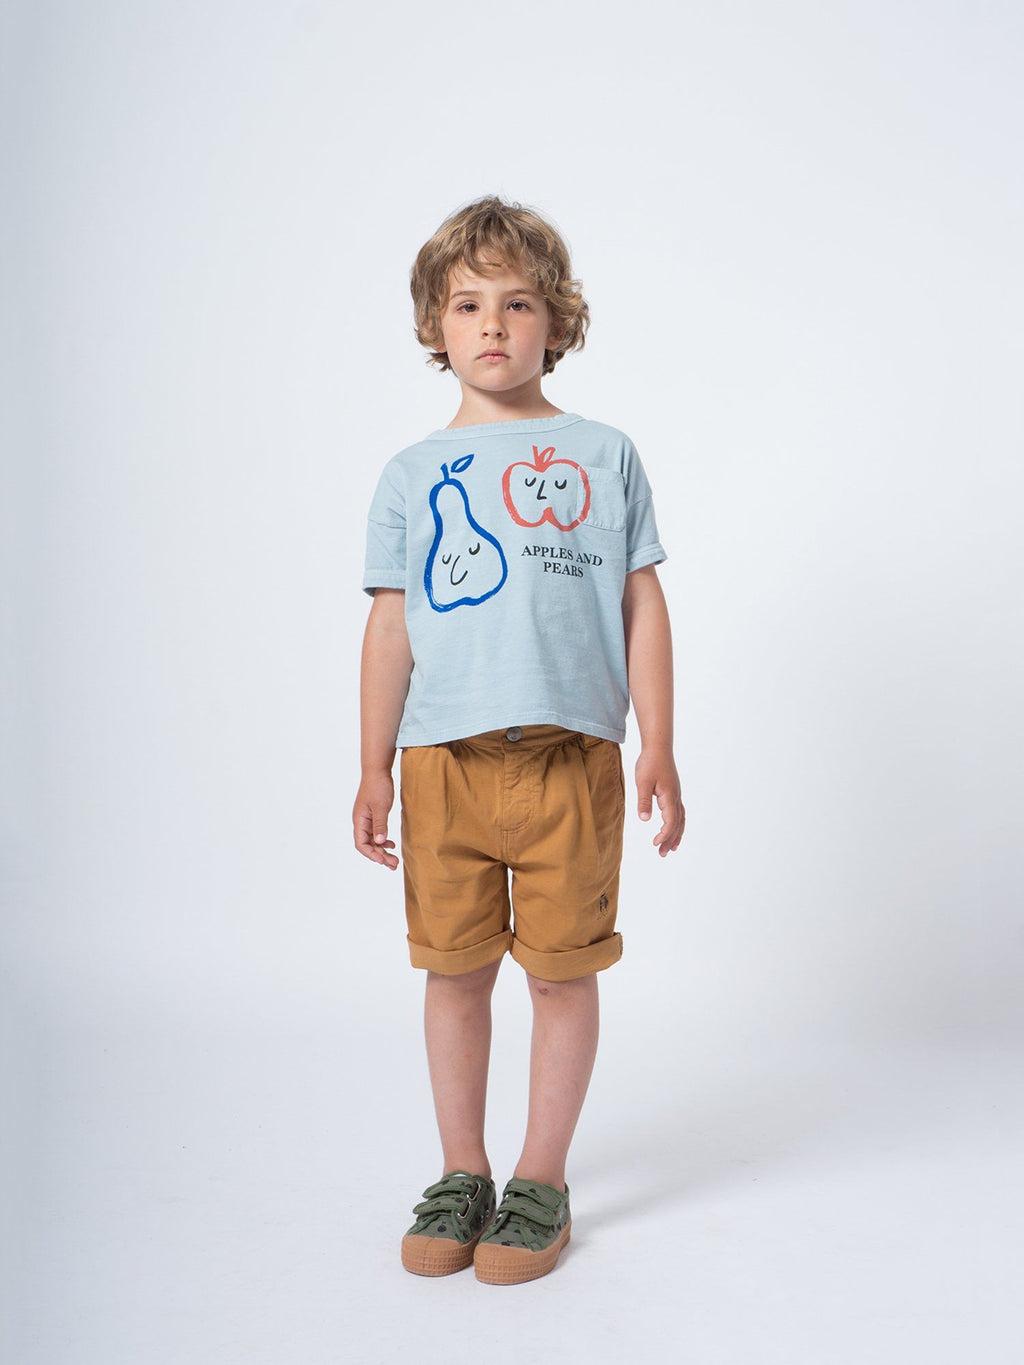 Apples & pears SS t-shirt Bobo Choses